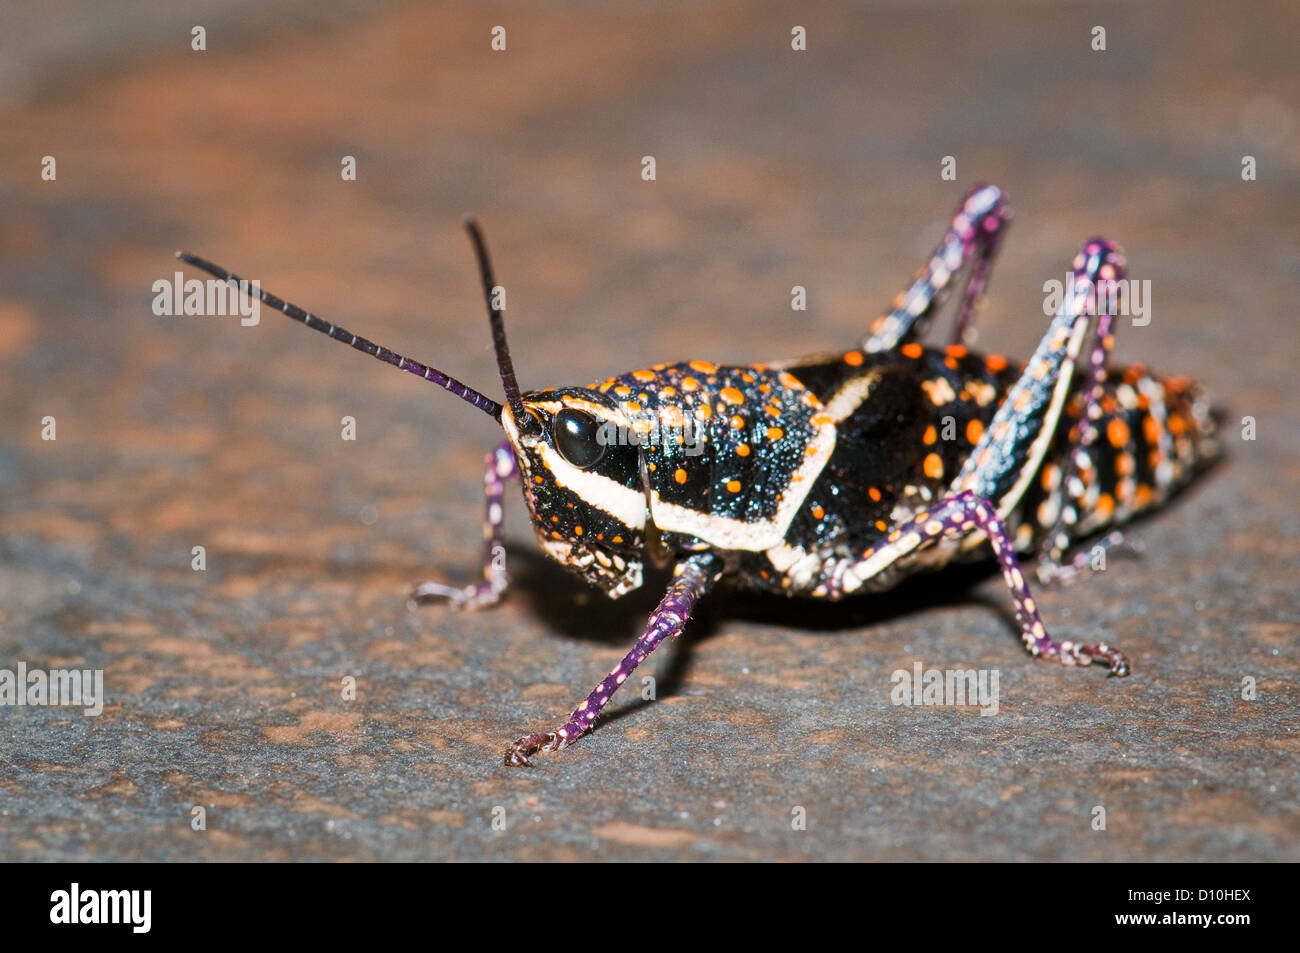 Blistered Grasshopper sitting on a rock. - Stock Image